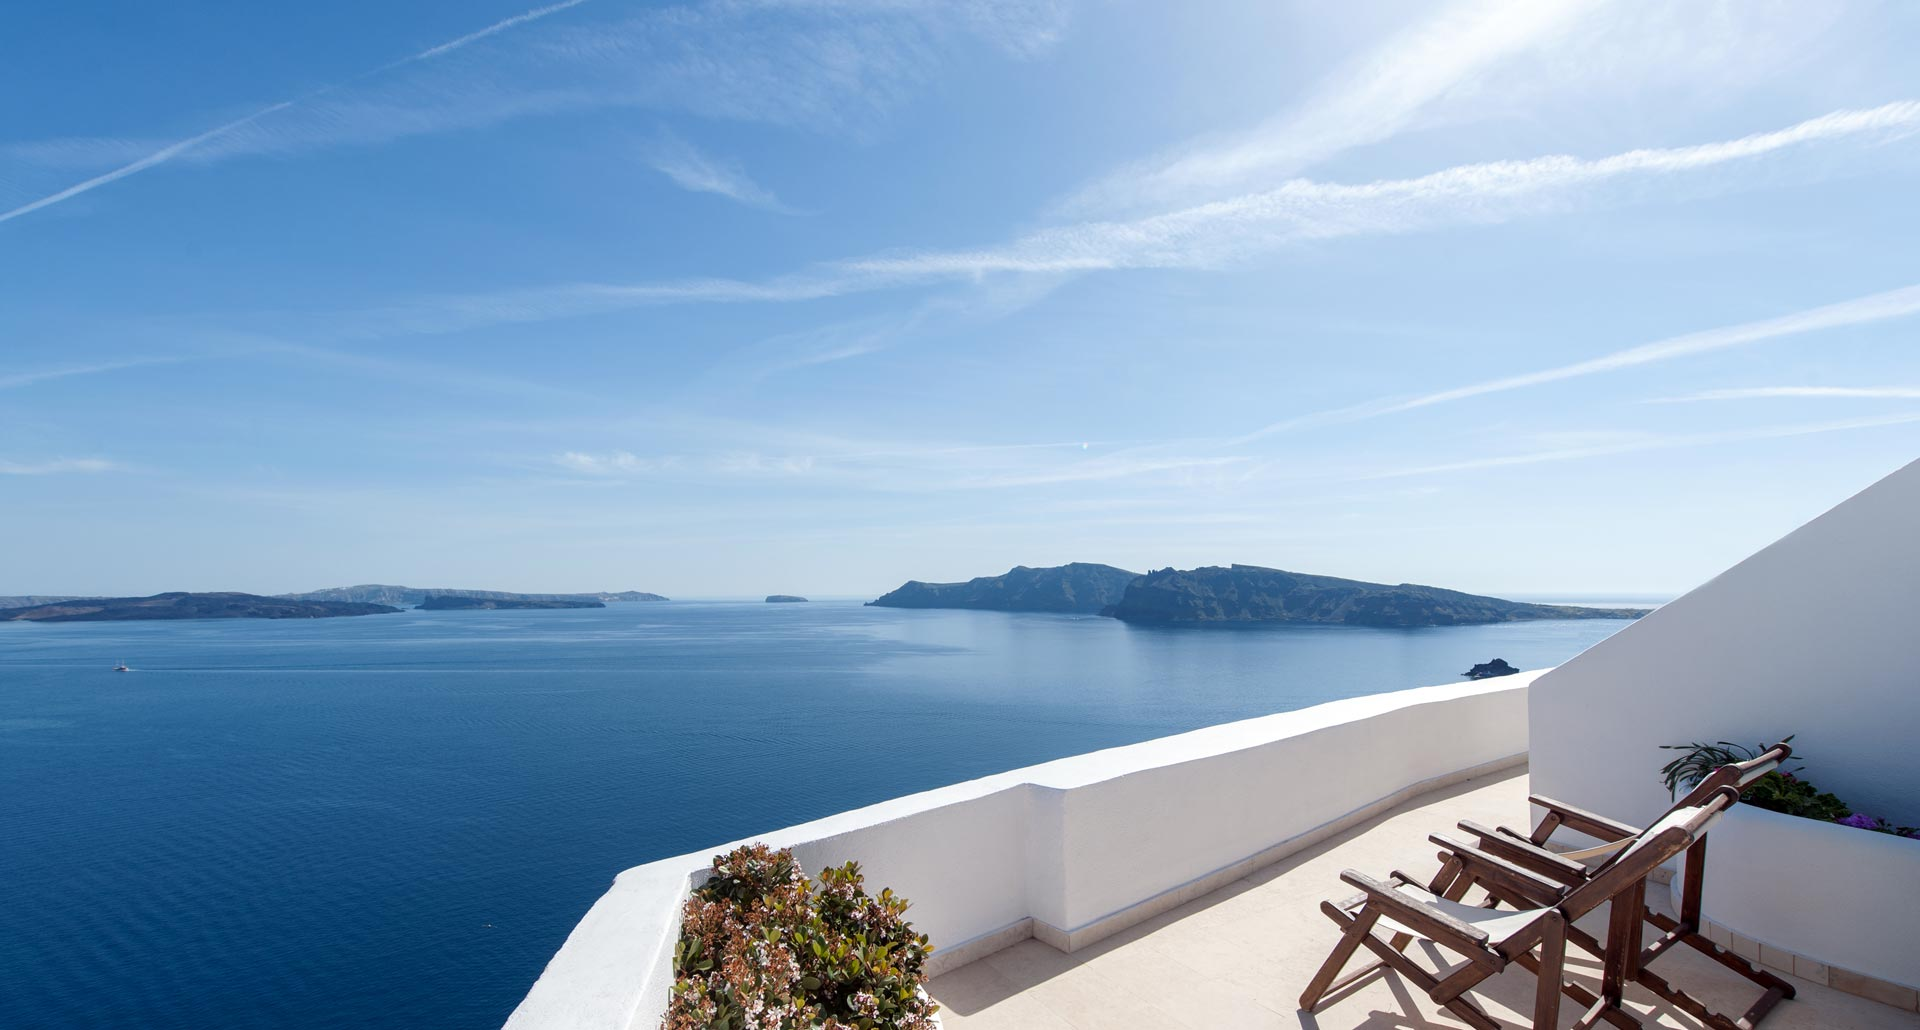 Strogili Apartments Santorini – Sea view from the veranda